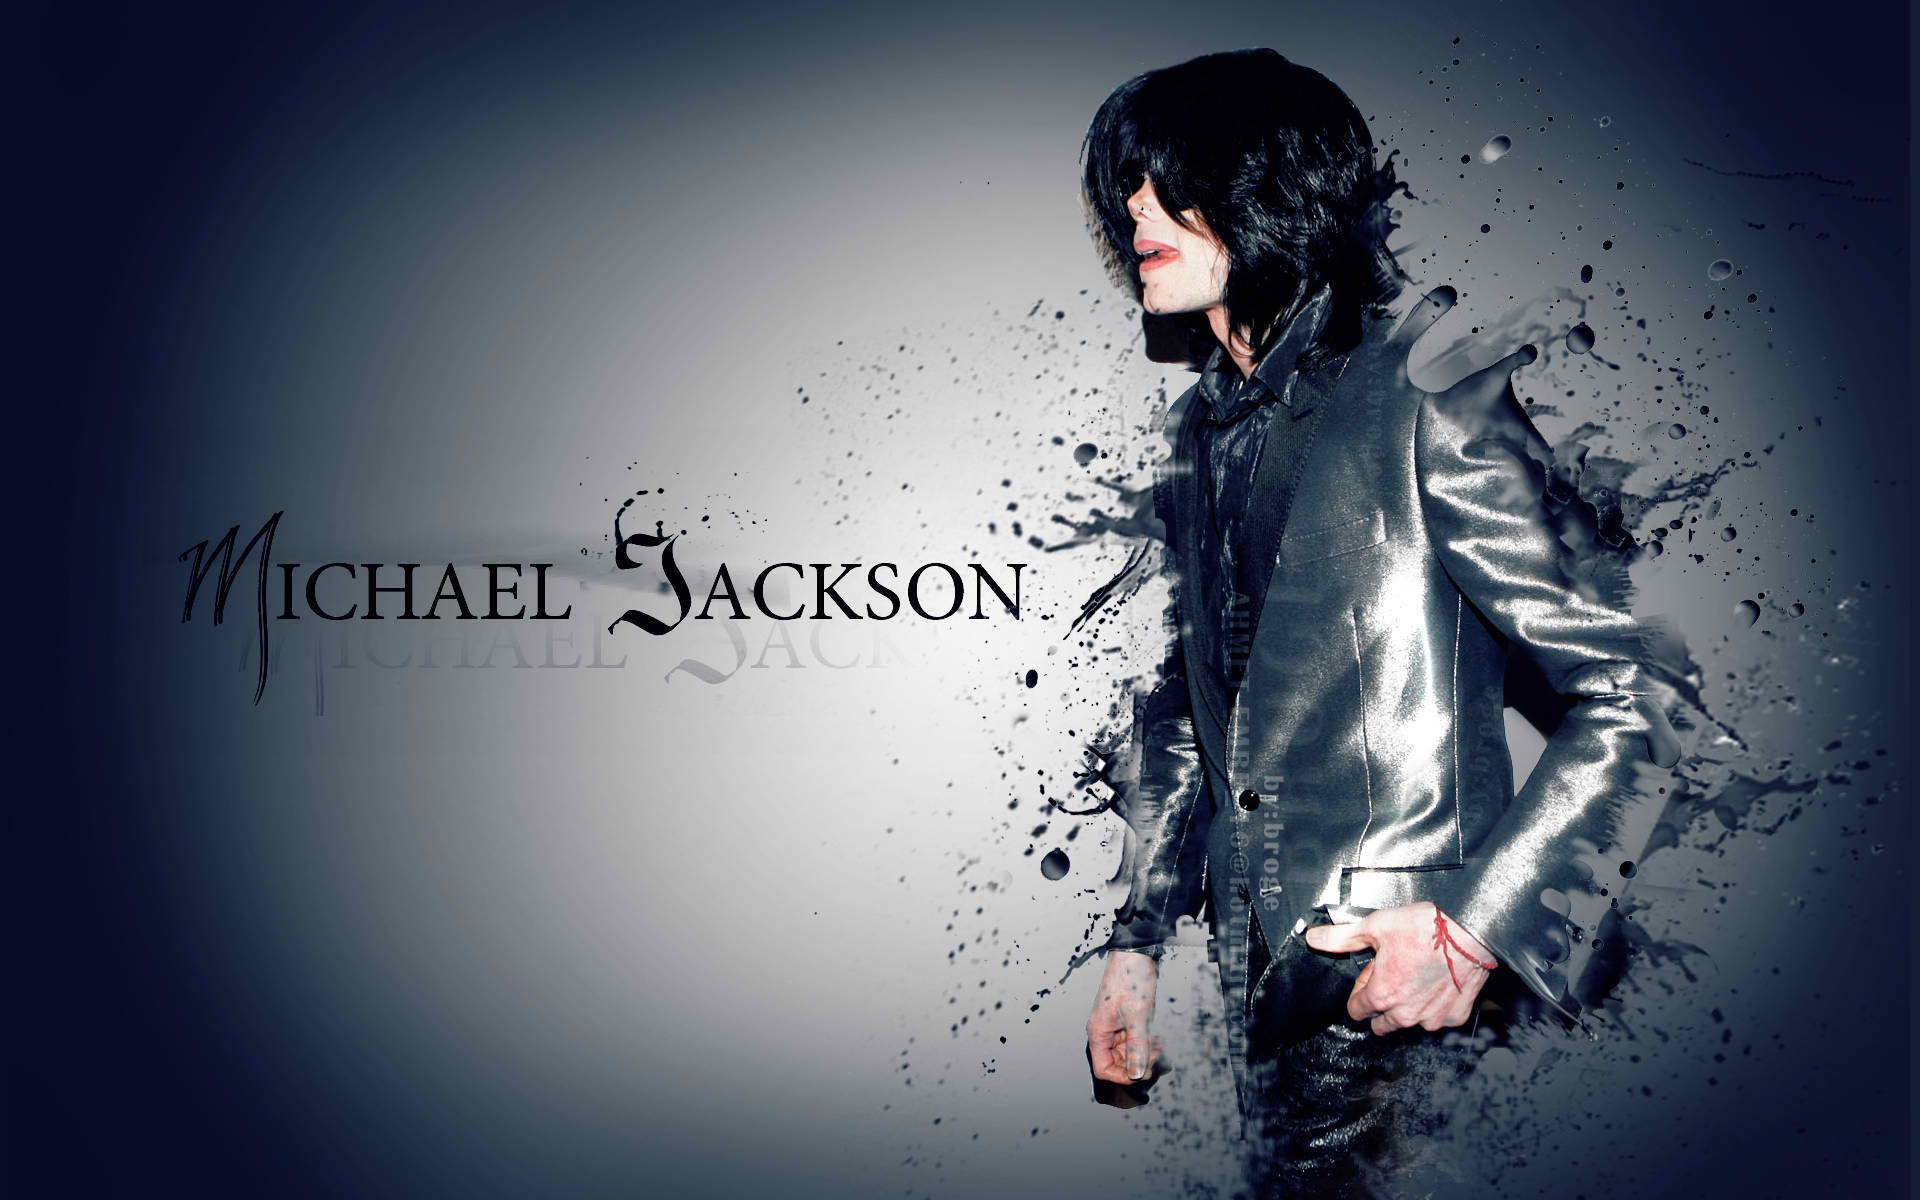 michael jackson 4ever mj 39 s robot dance wallpaper